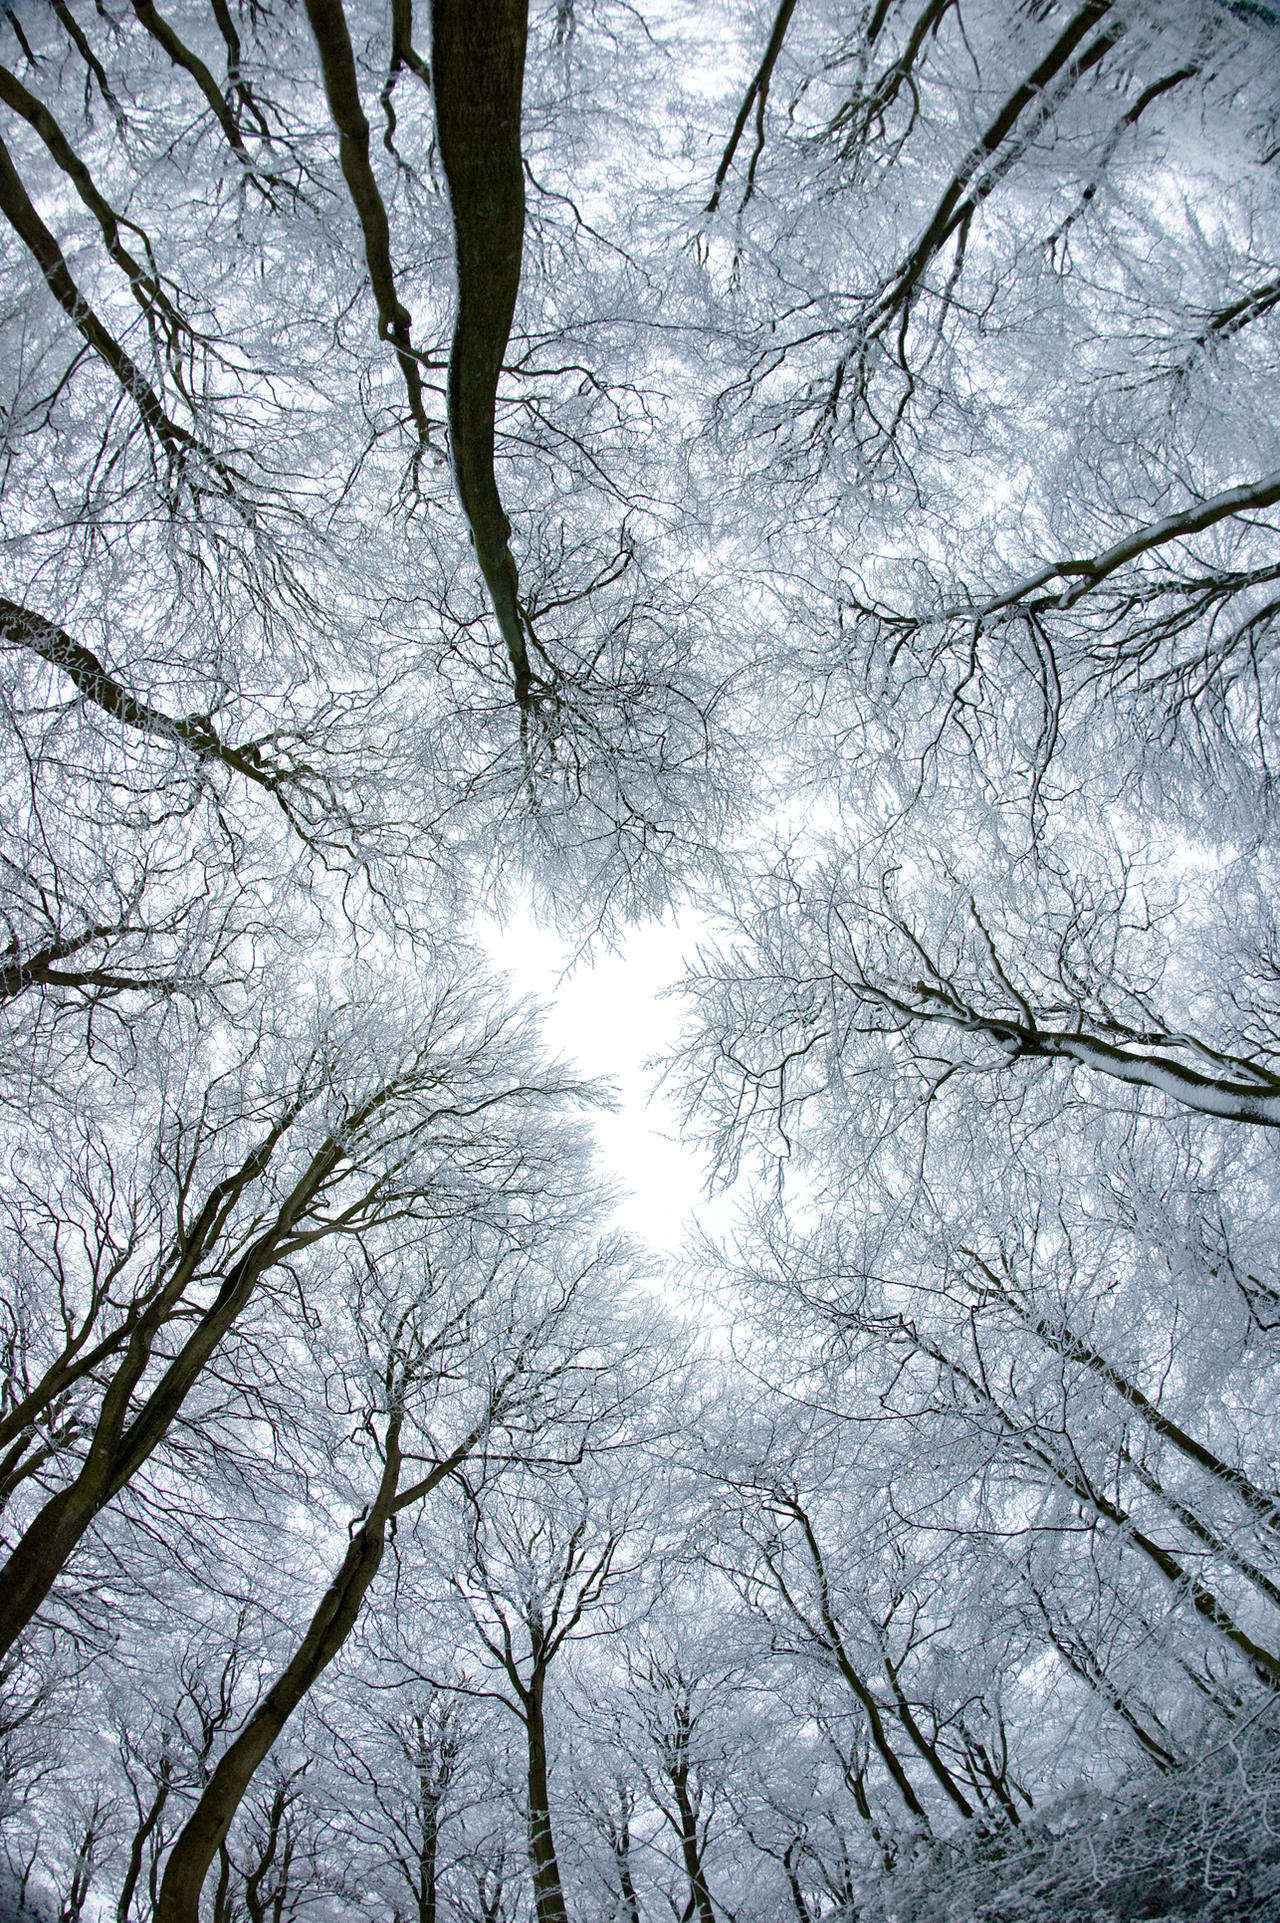 Trees in Snow by pnewbery